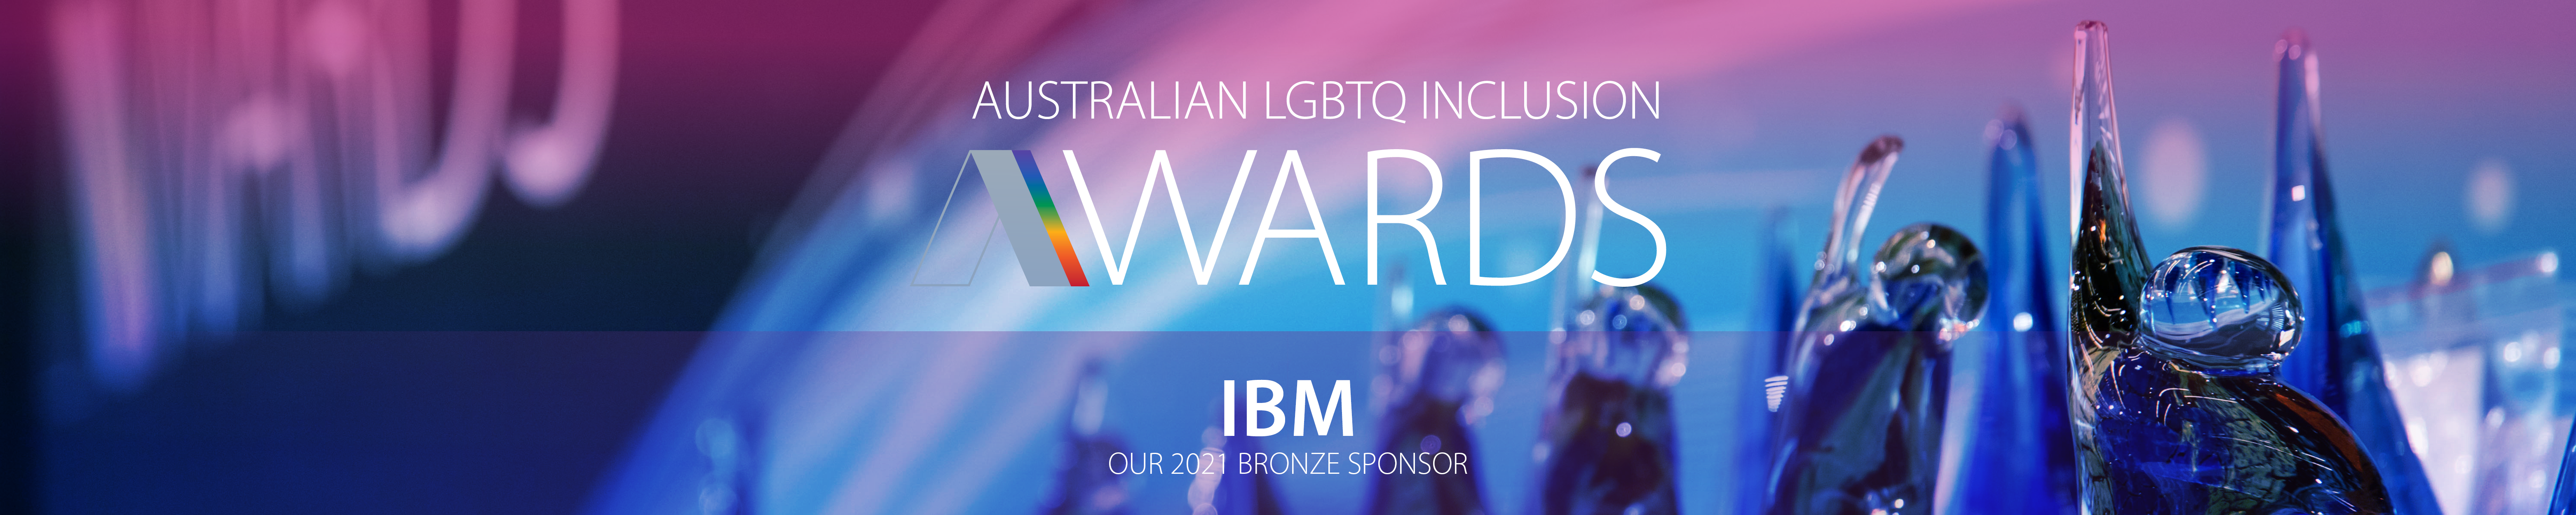 2021AWARDS_Sponsor_IBM